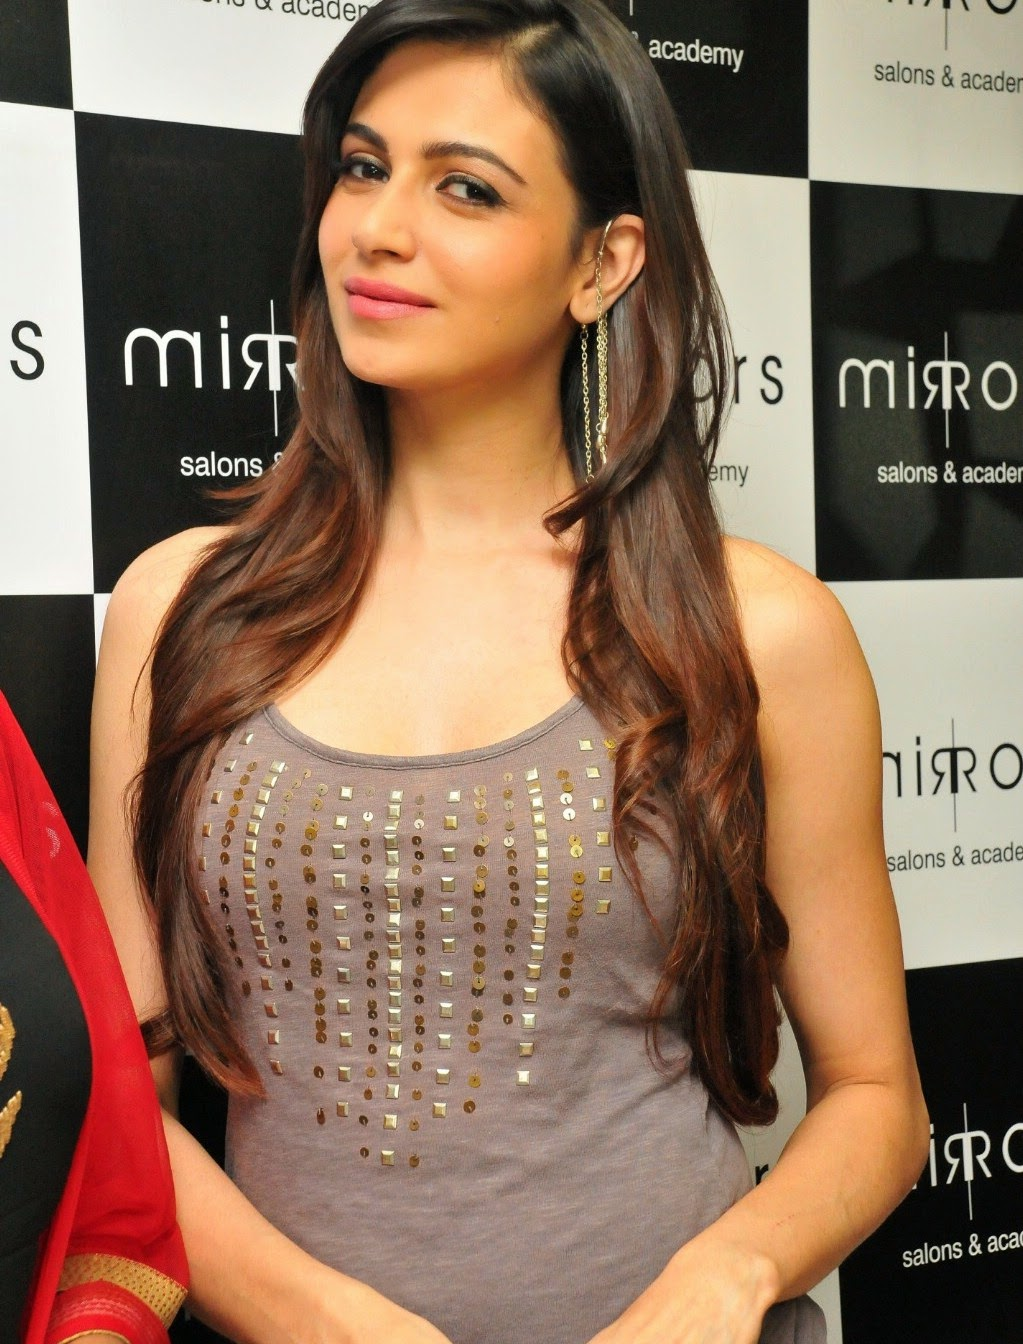 High Quality Bollywood Celebrity Pictures: Miss India